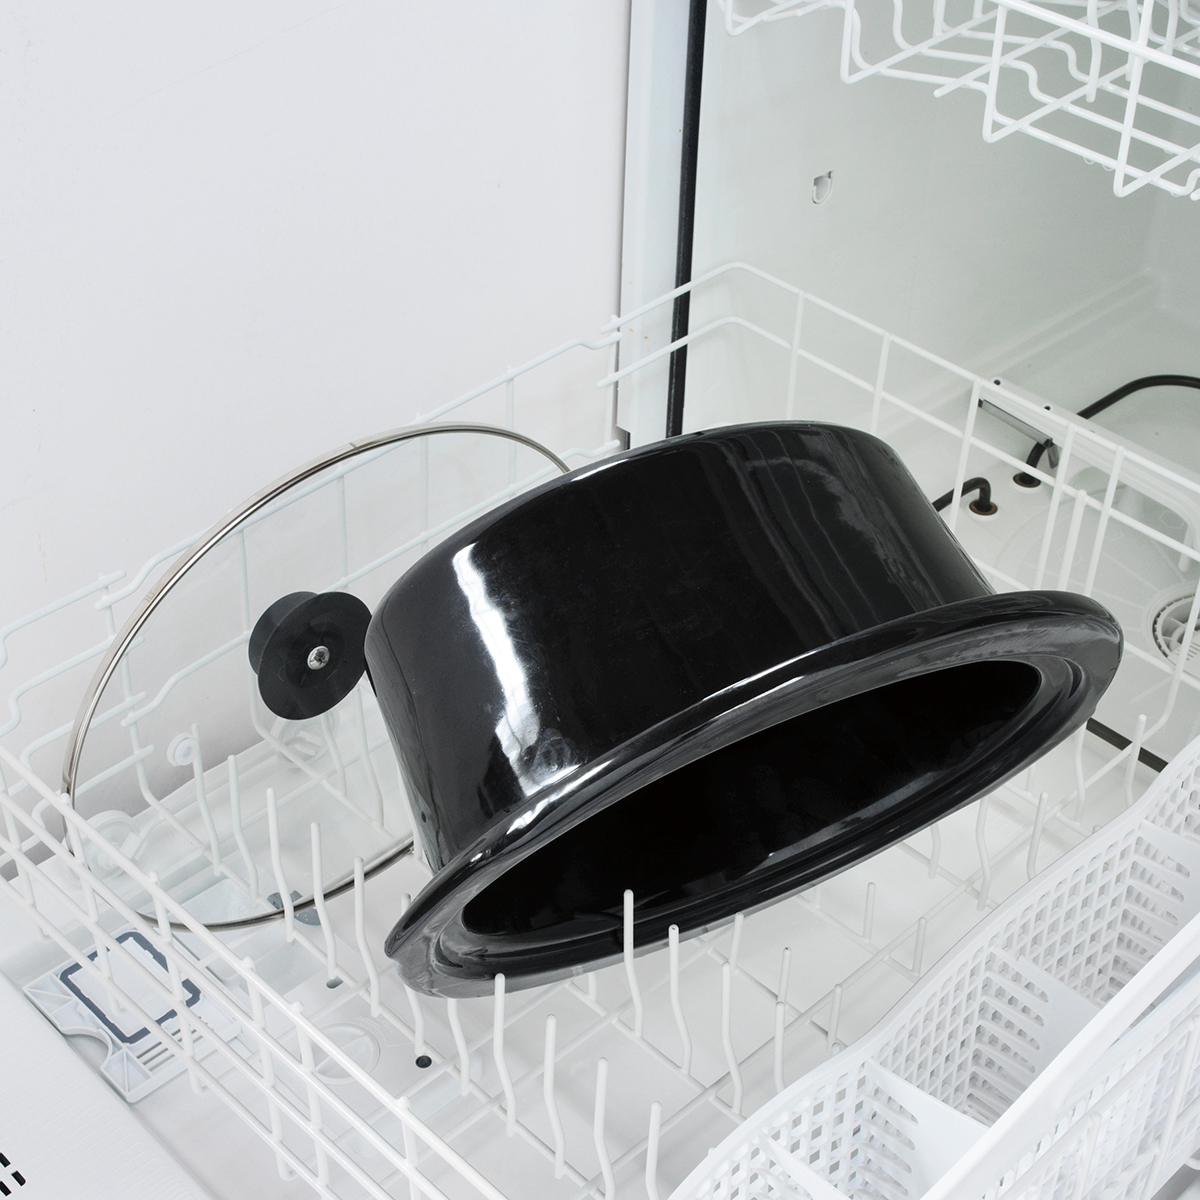 Most slow cooker crocks and lids are dishwasher safe.